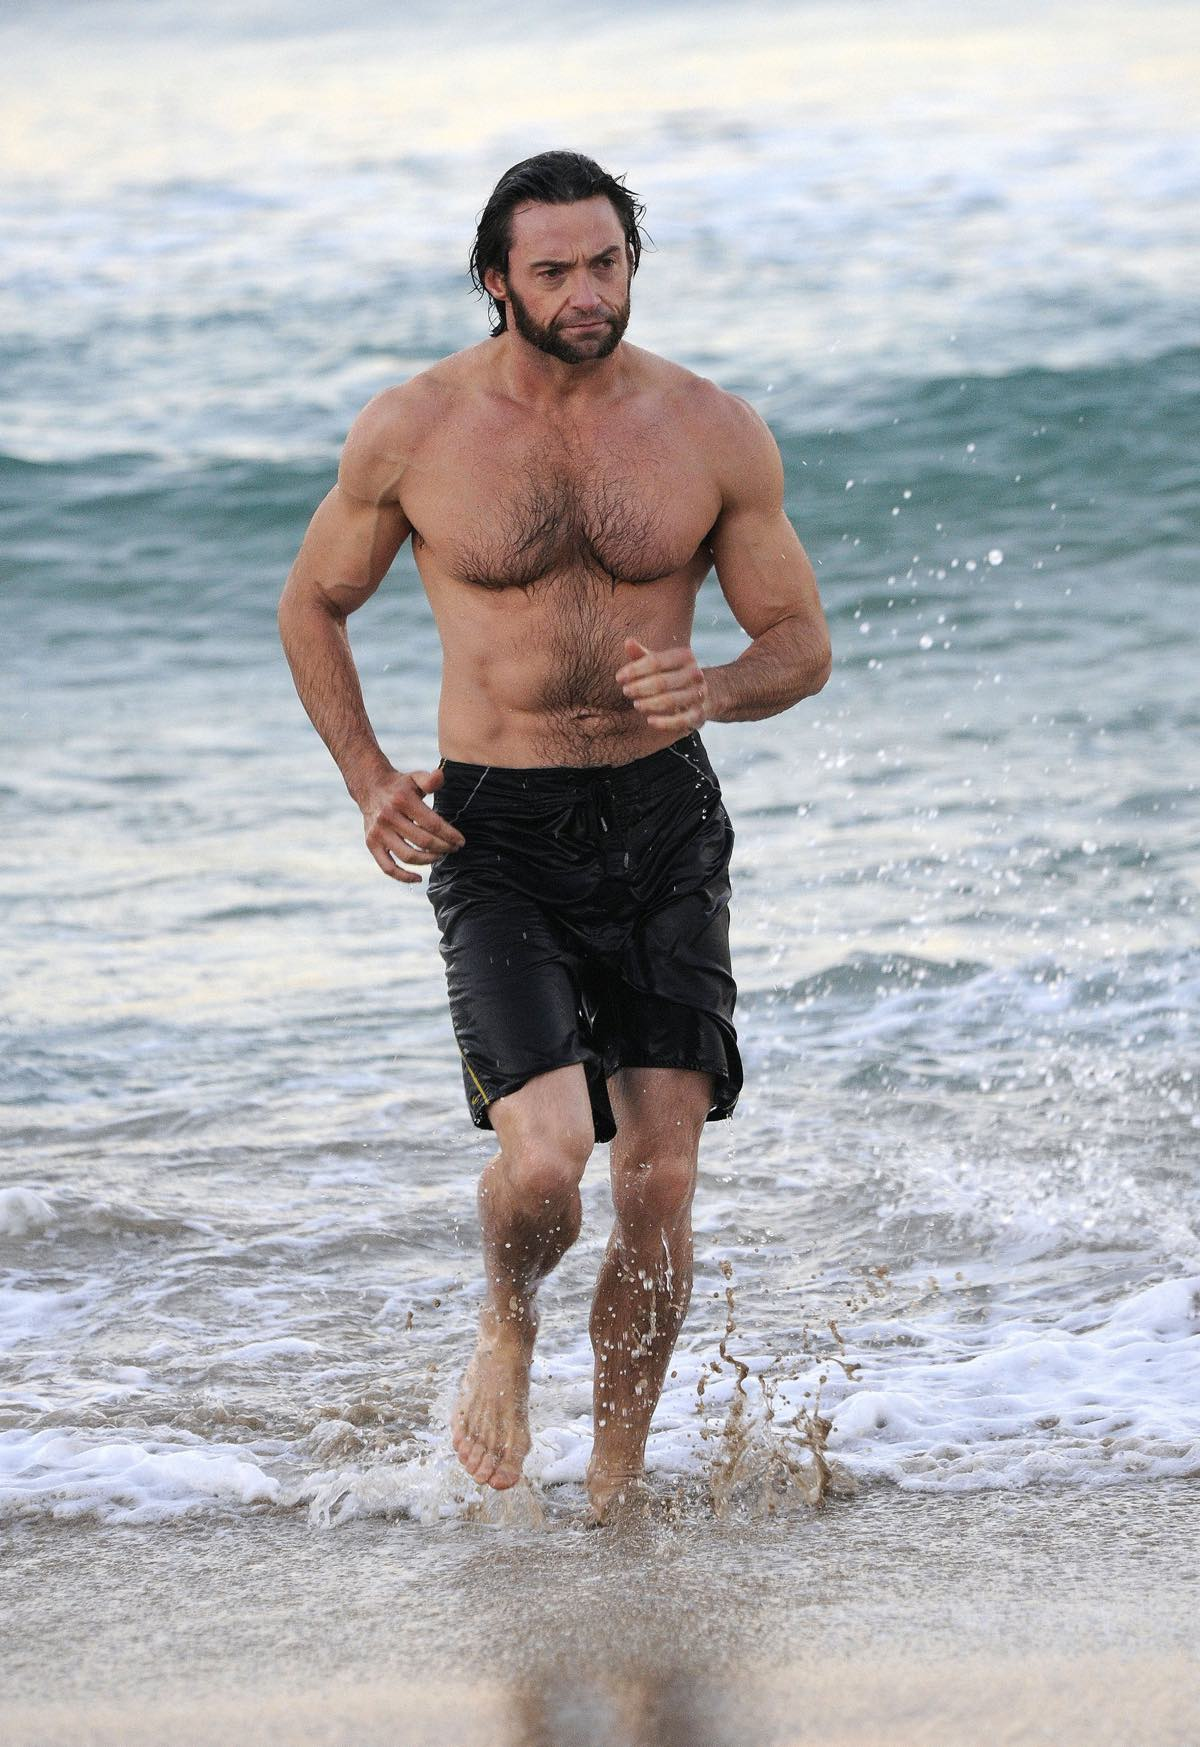 Jackman's Chilly Dip